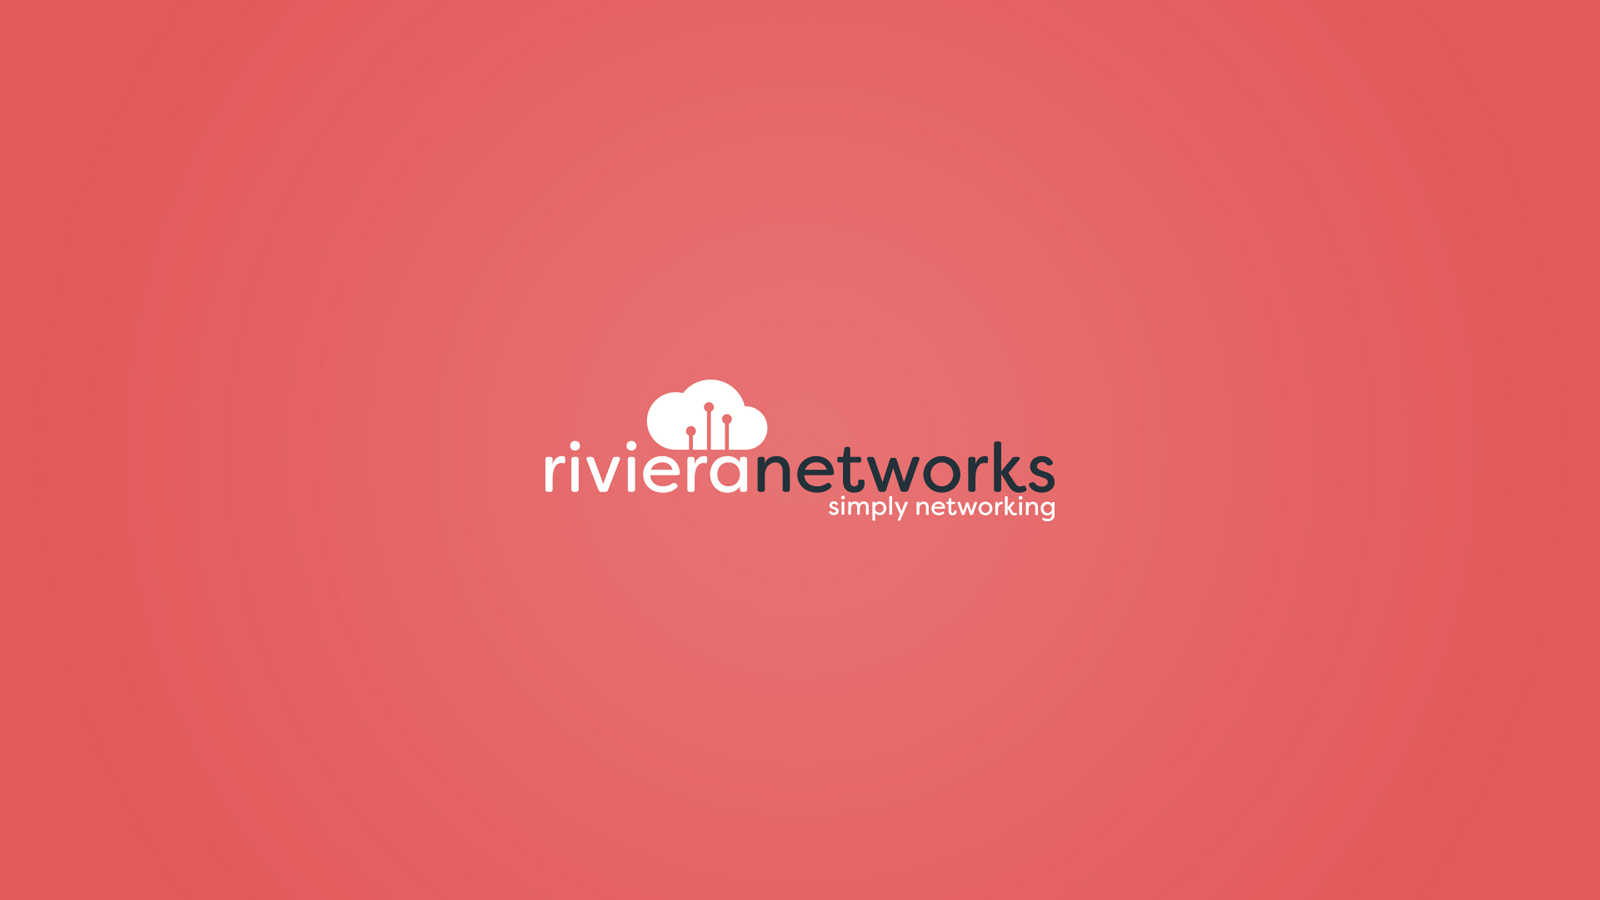 Riviera Networks Essex Website Design & Branding